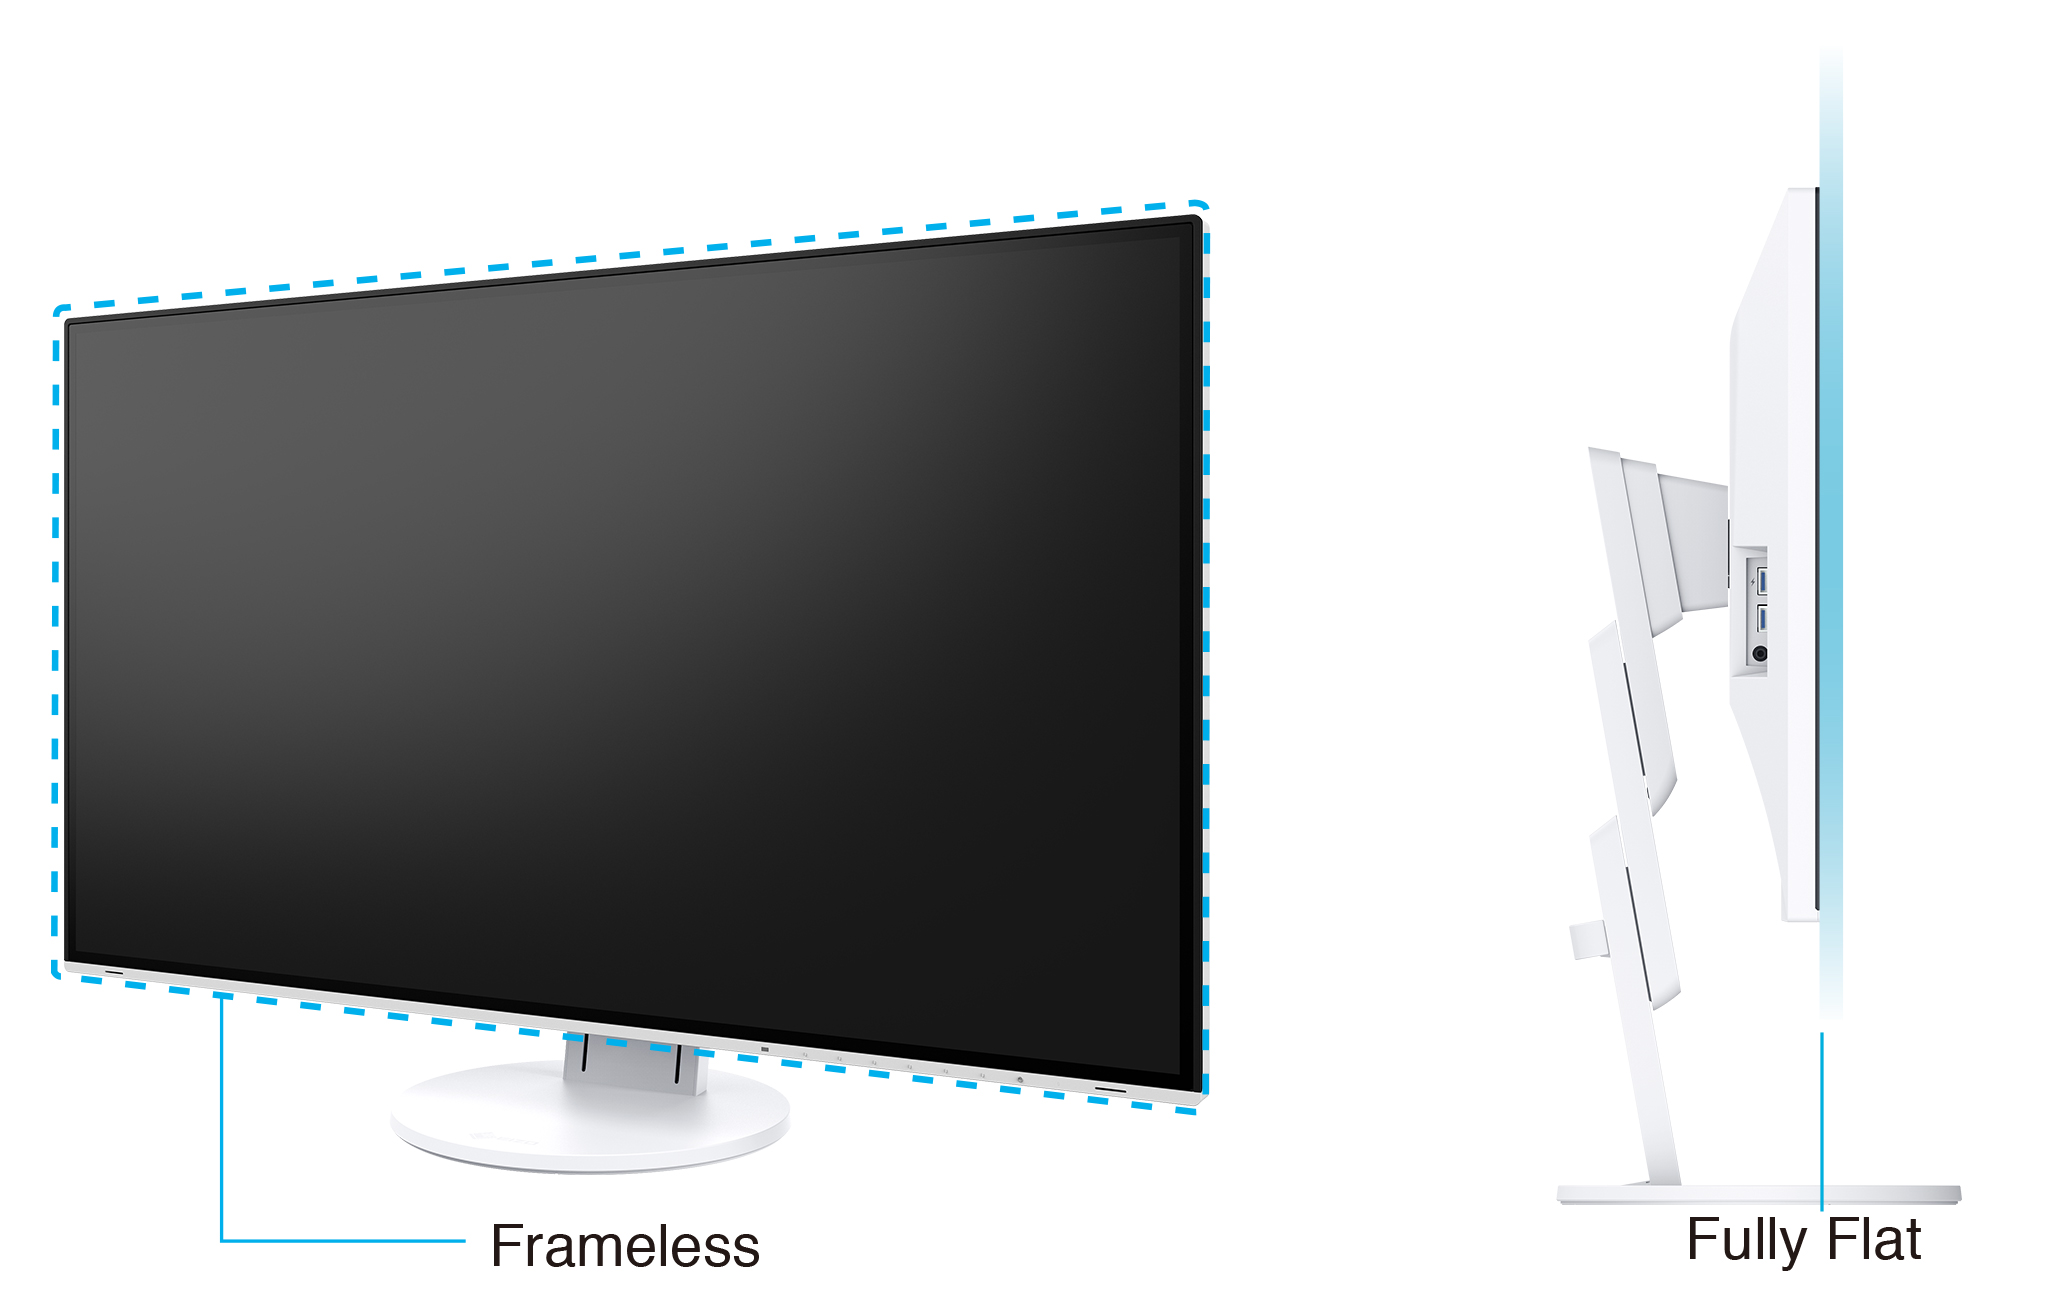 Fit 4K Resolution on Any Desk with this Fully Flat and Frameless Design